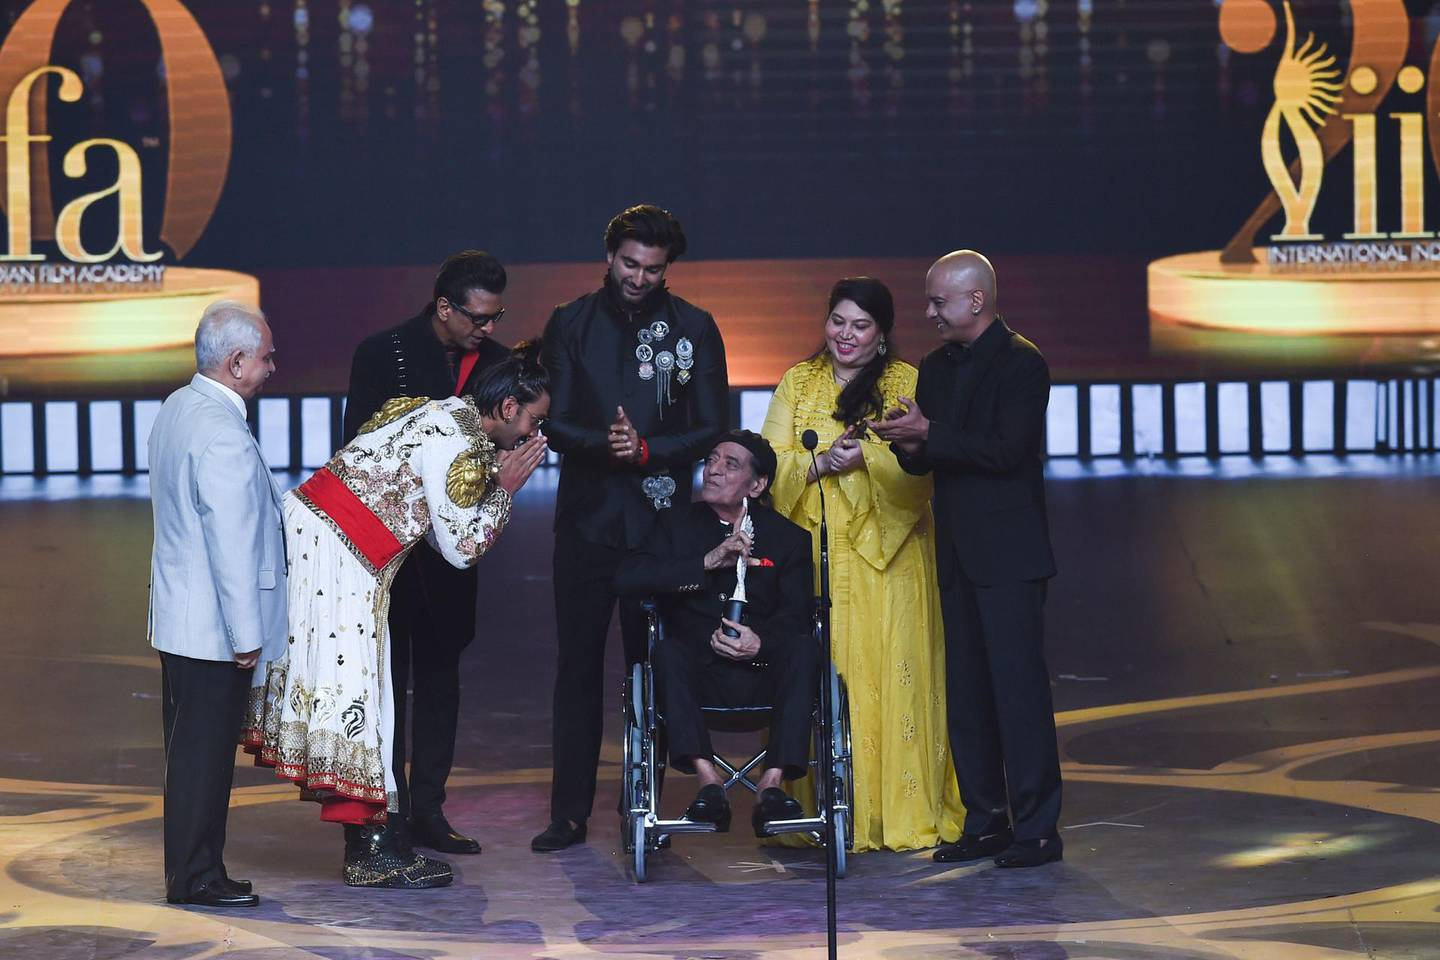 Bollywood actor Ranveer Singh (2L) bows after actor Jagdeep (C) received the Lifetime Achievement award during the 20th International Indian Film Academy (IIFA) Awards at NSCI Dome in Mumbai early on September 19, 2019. / AFP / INDRANIL MUKHERJEE